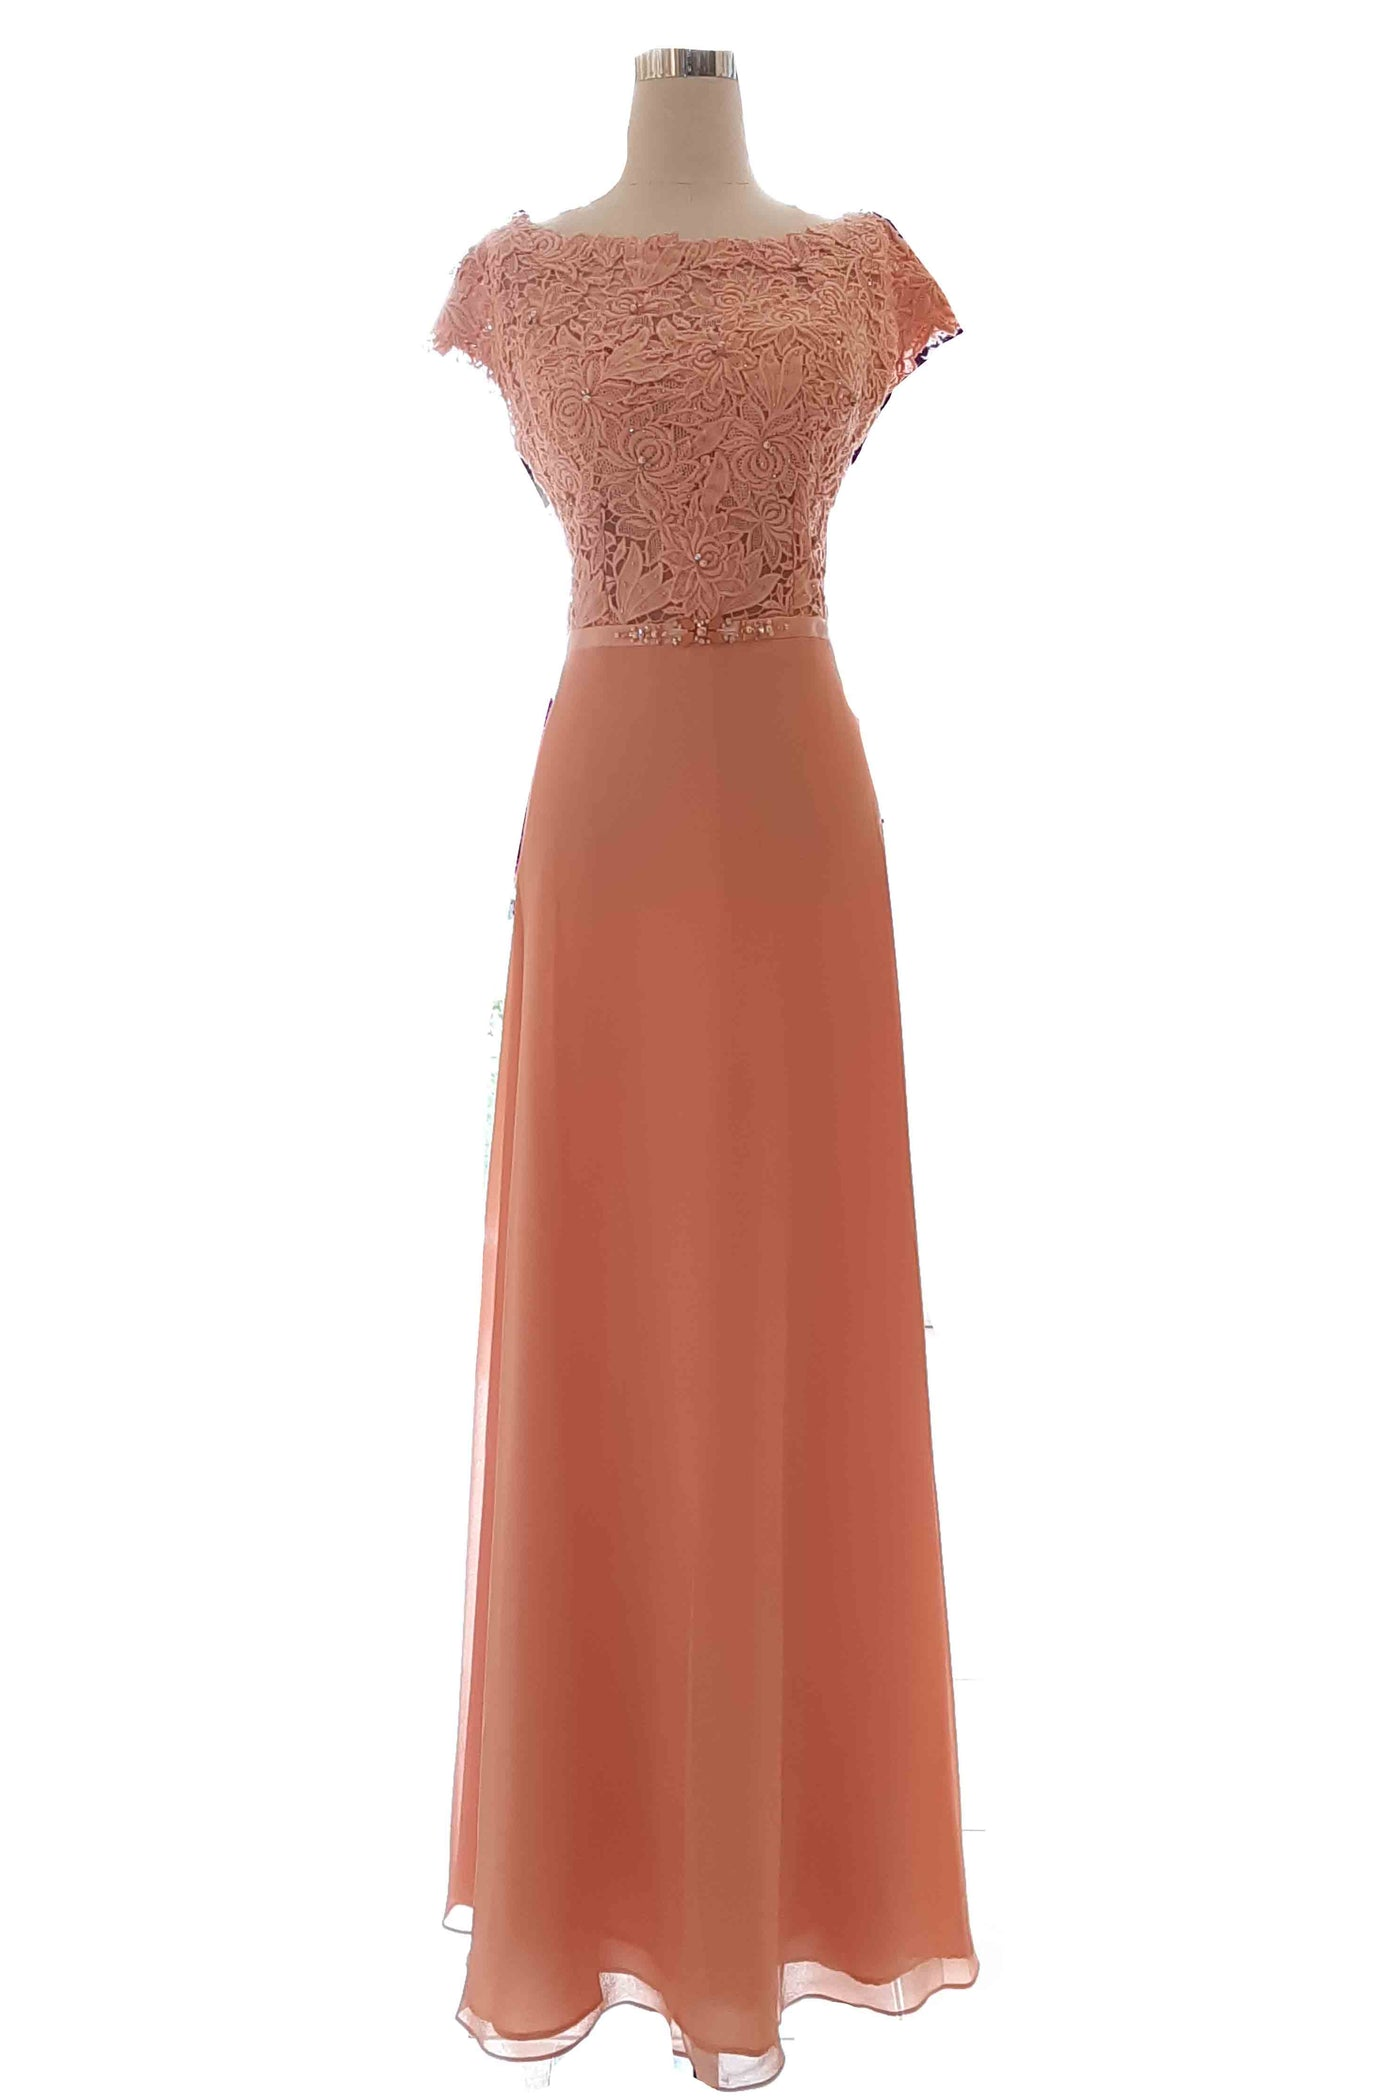 Buy : Peaches Pinkish - Peach Chiffon Dress